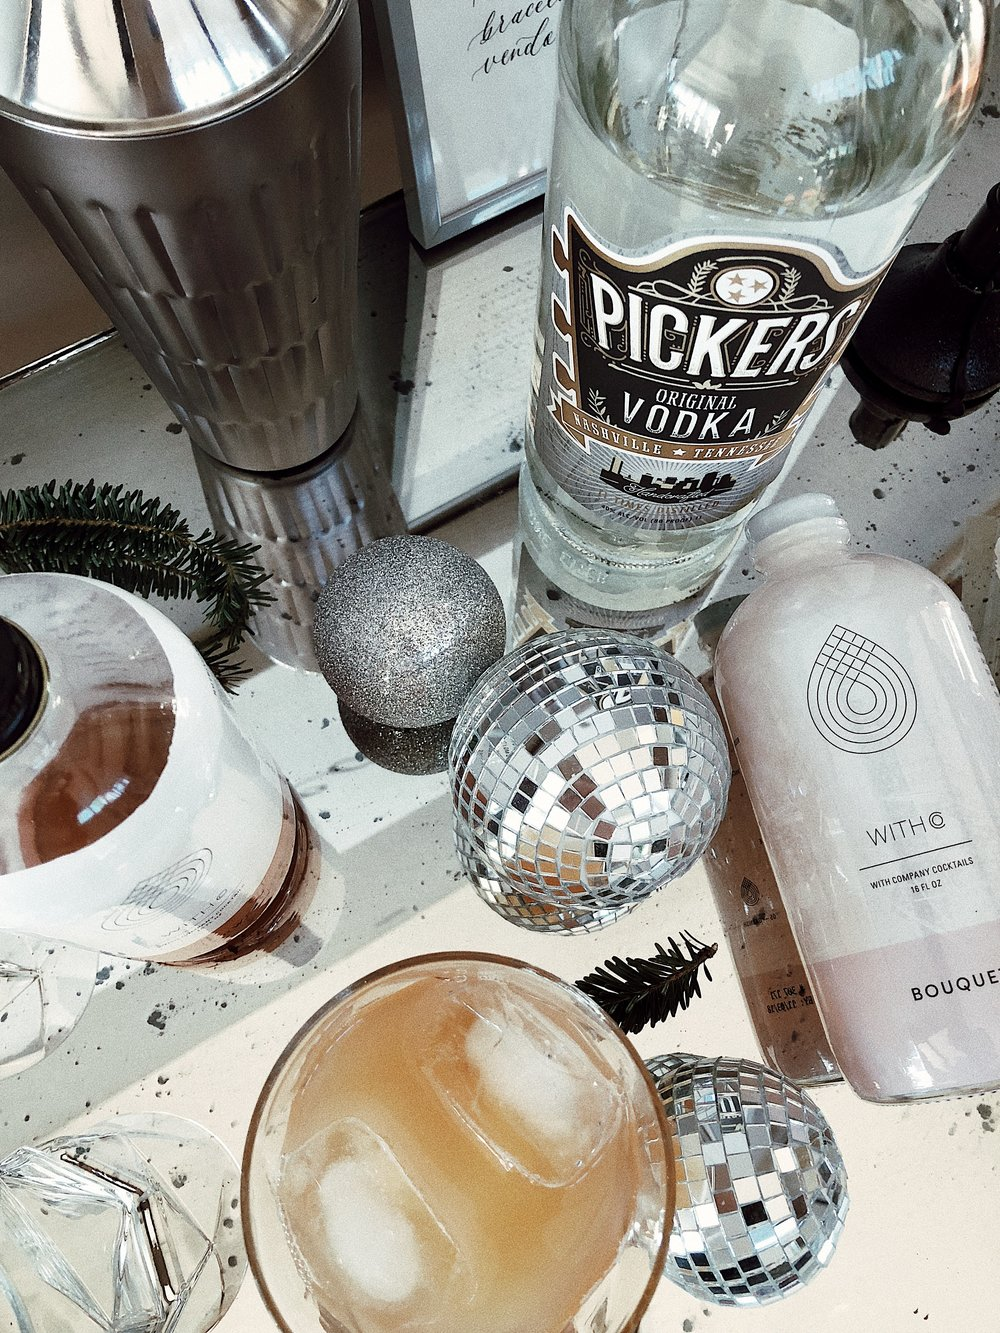 christmas-holiday-womens-retreat-cocktails-and-company-withco-pickers-vodka-bar-cart-tennessee.jpg